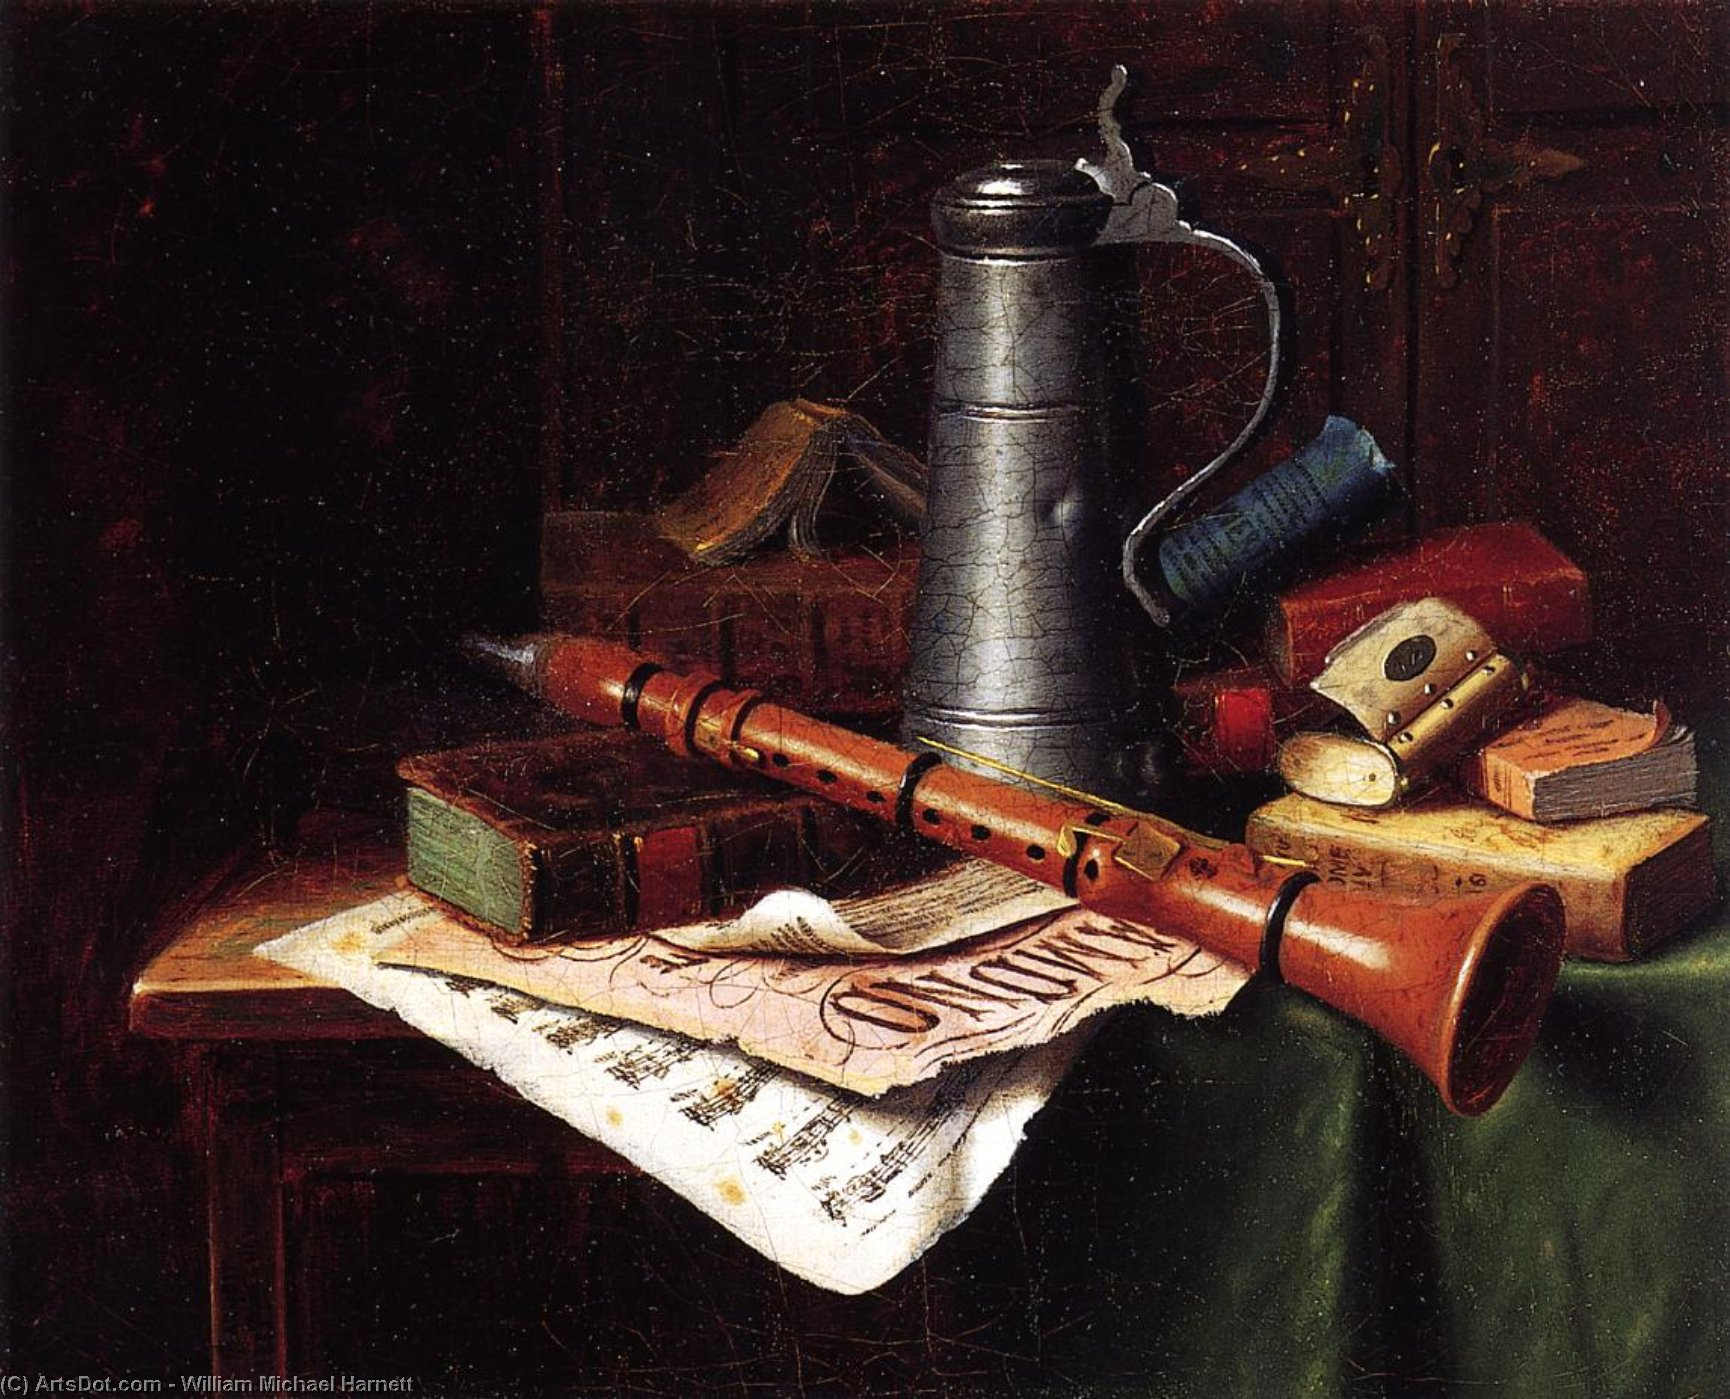 ancora la vita con Clarinetto , olio su tela di William Michael Harnett (1848-1892, Ireland)